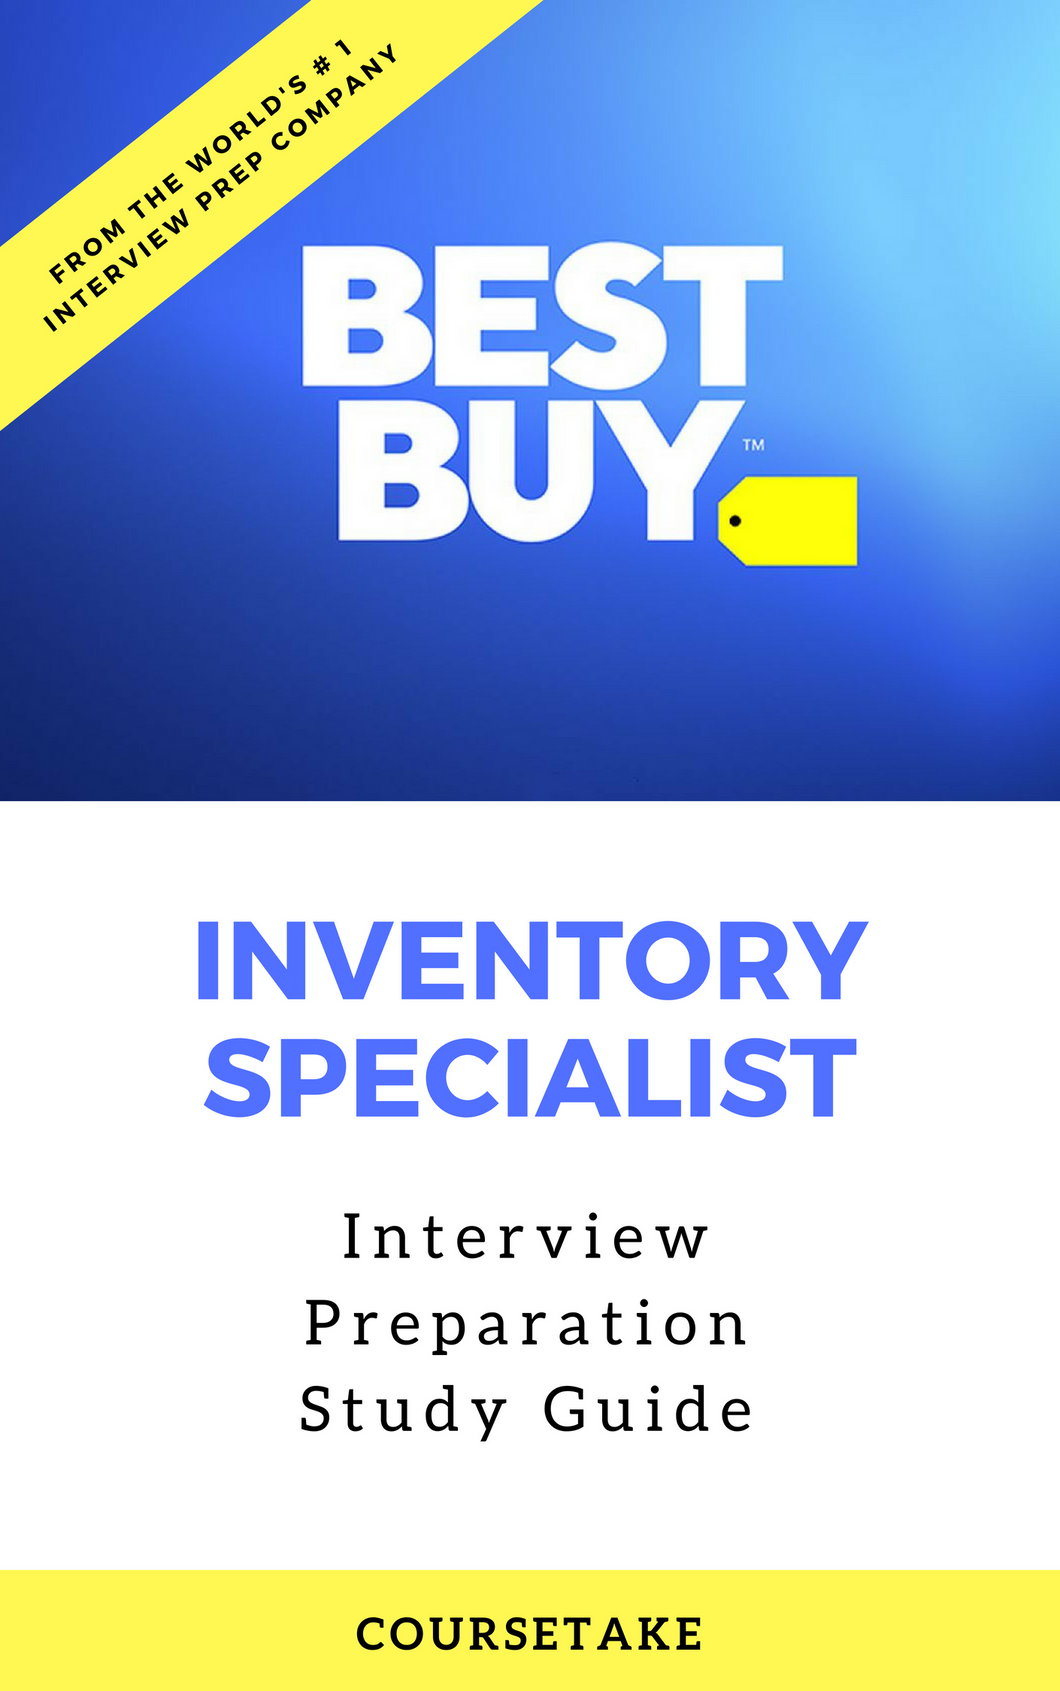 Best Buy Inventory Specialist Interview Preparation Study Guide